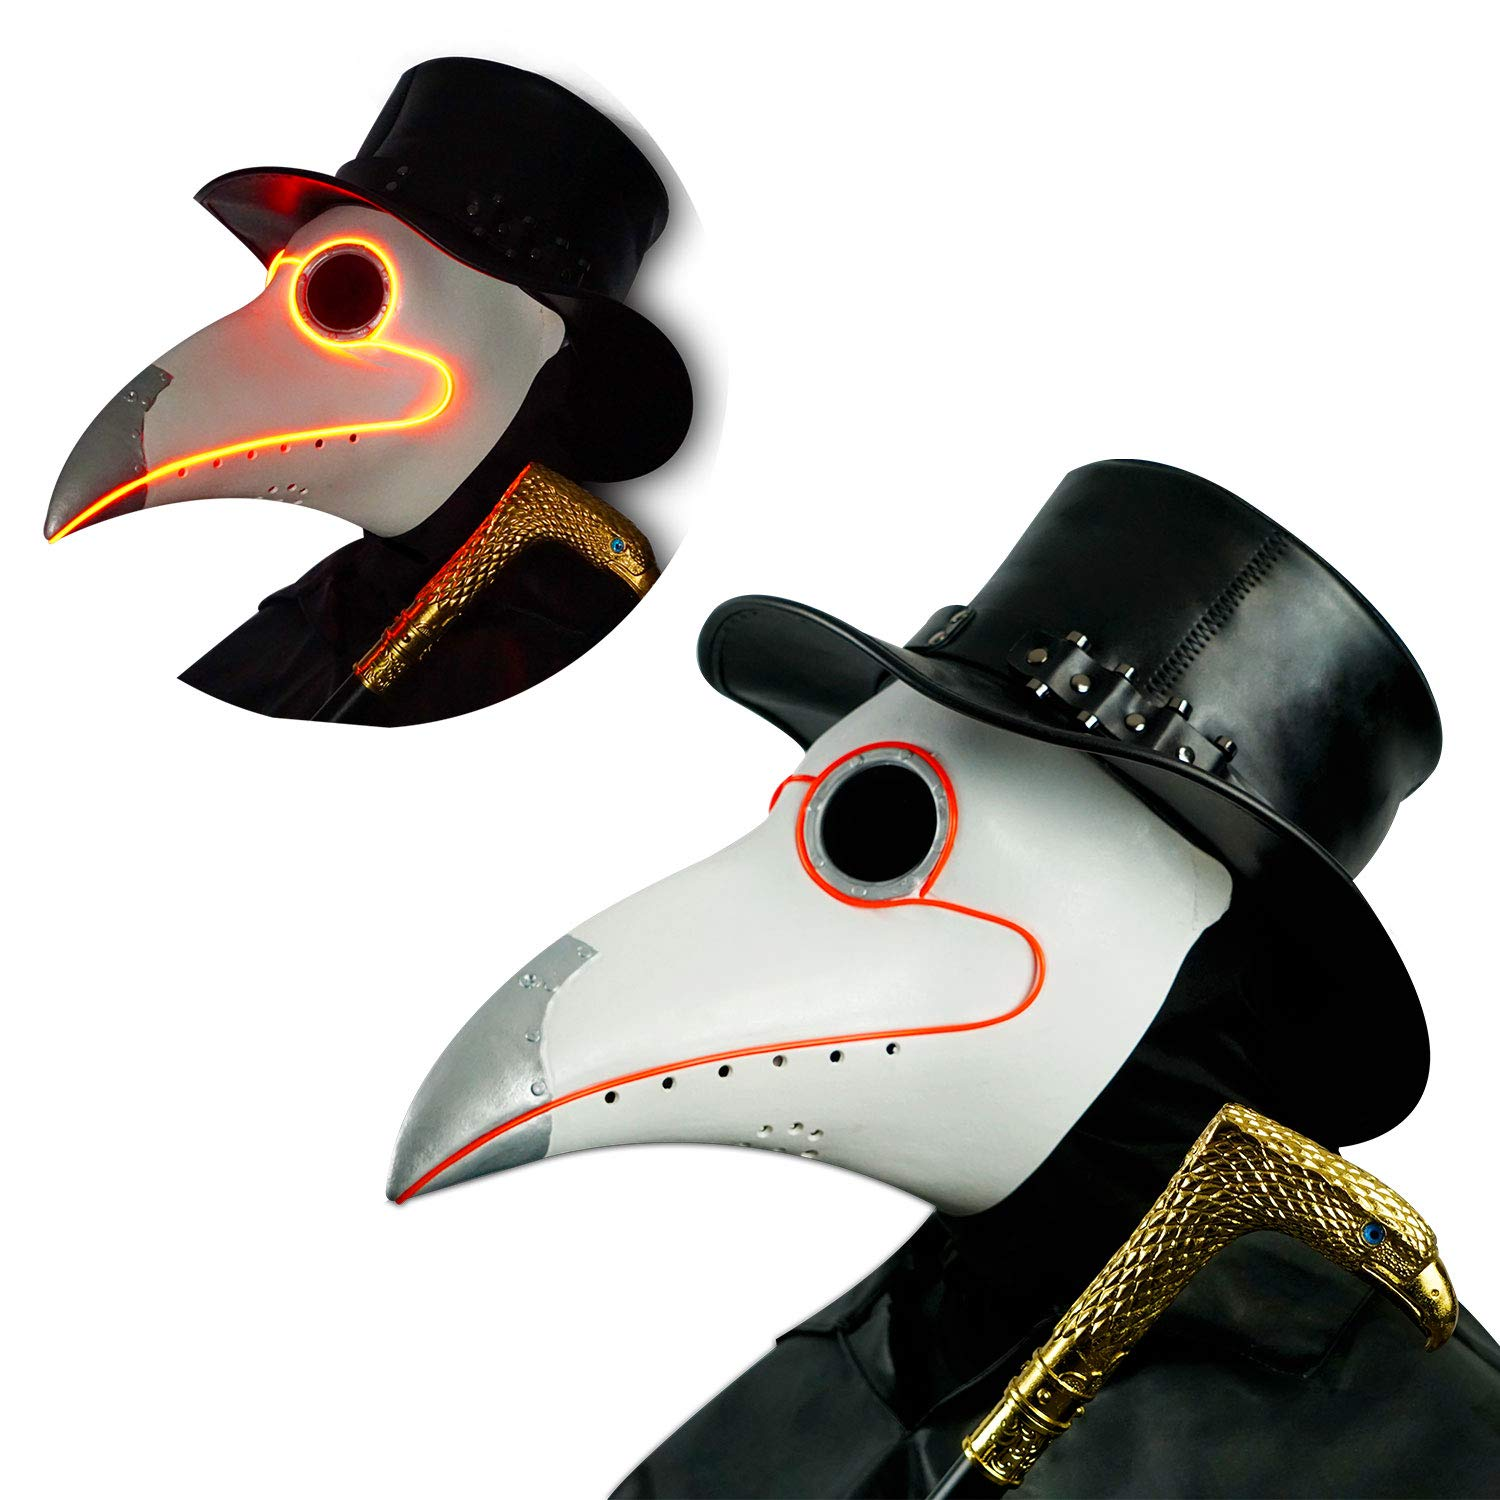 LED White Rubber Plague Doctor Mask Light Up, Halloween Long Nose Bird Beek Steampunk Gas Latex Face Mask, Party Cosplay Costume Prop for Kids and Adult